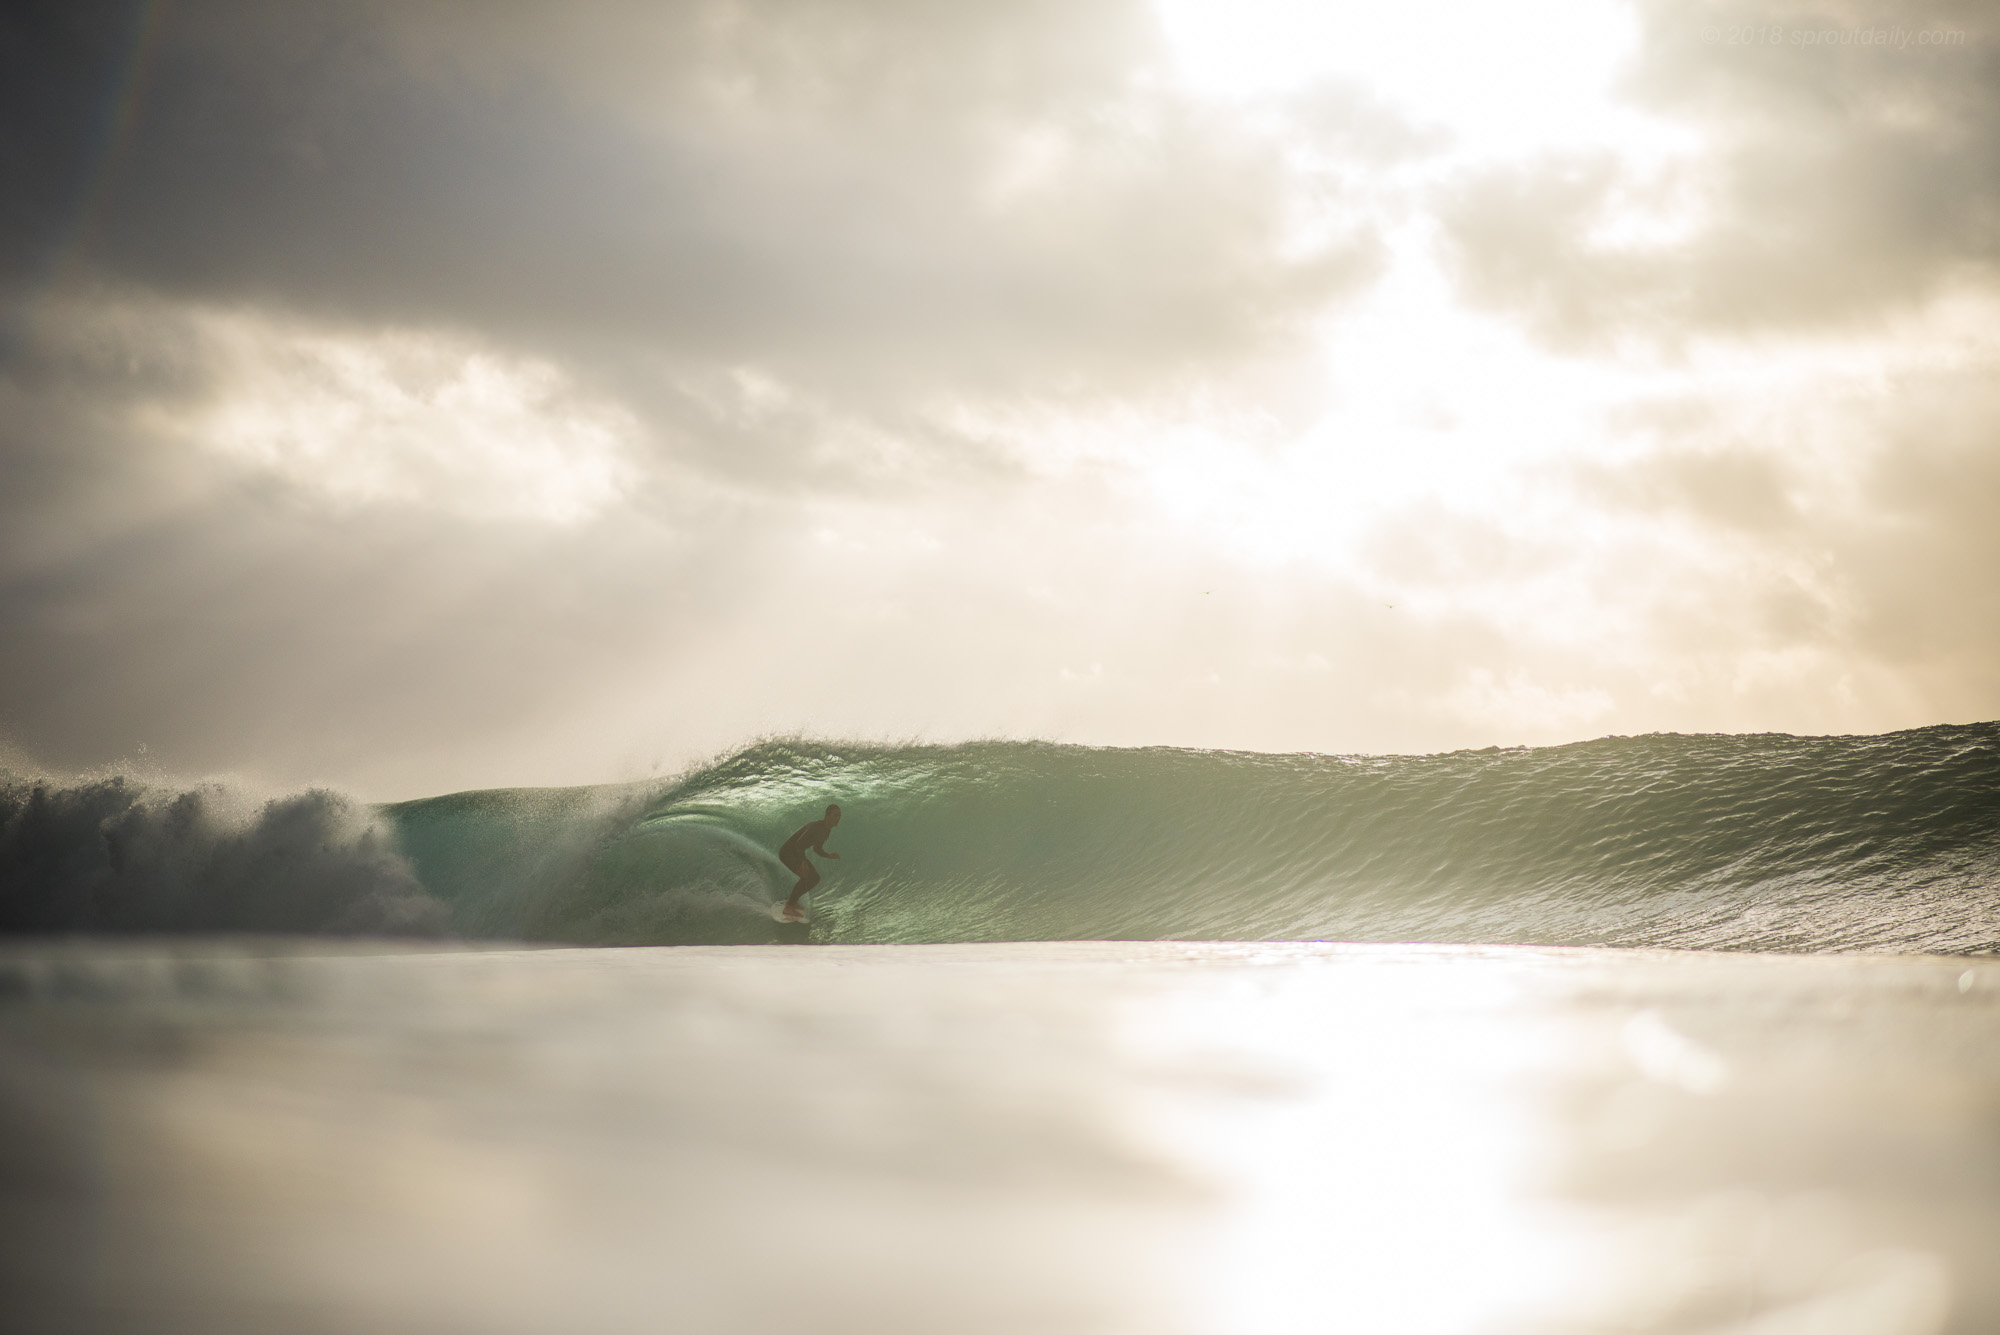 OK - now this makes you want to go surfing yeah?!